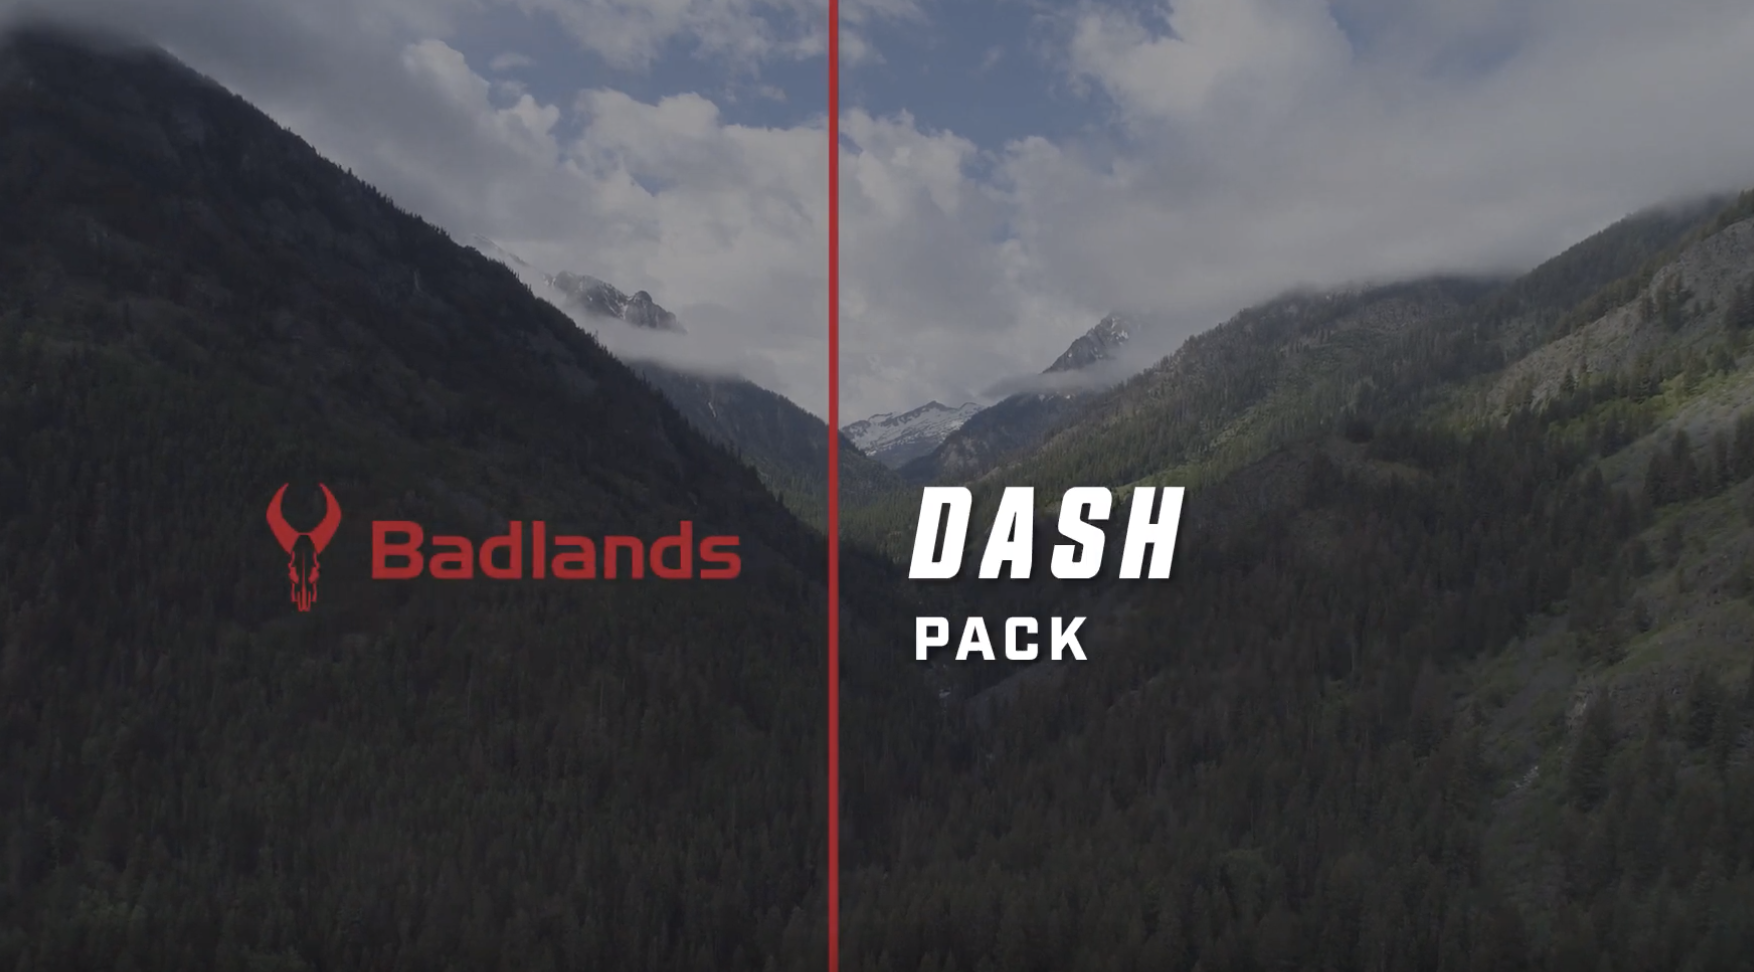 Learn more about the Dash Pack